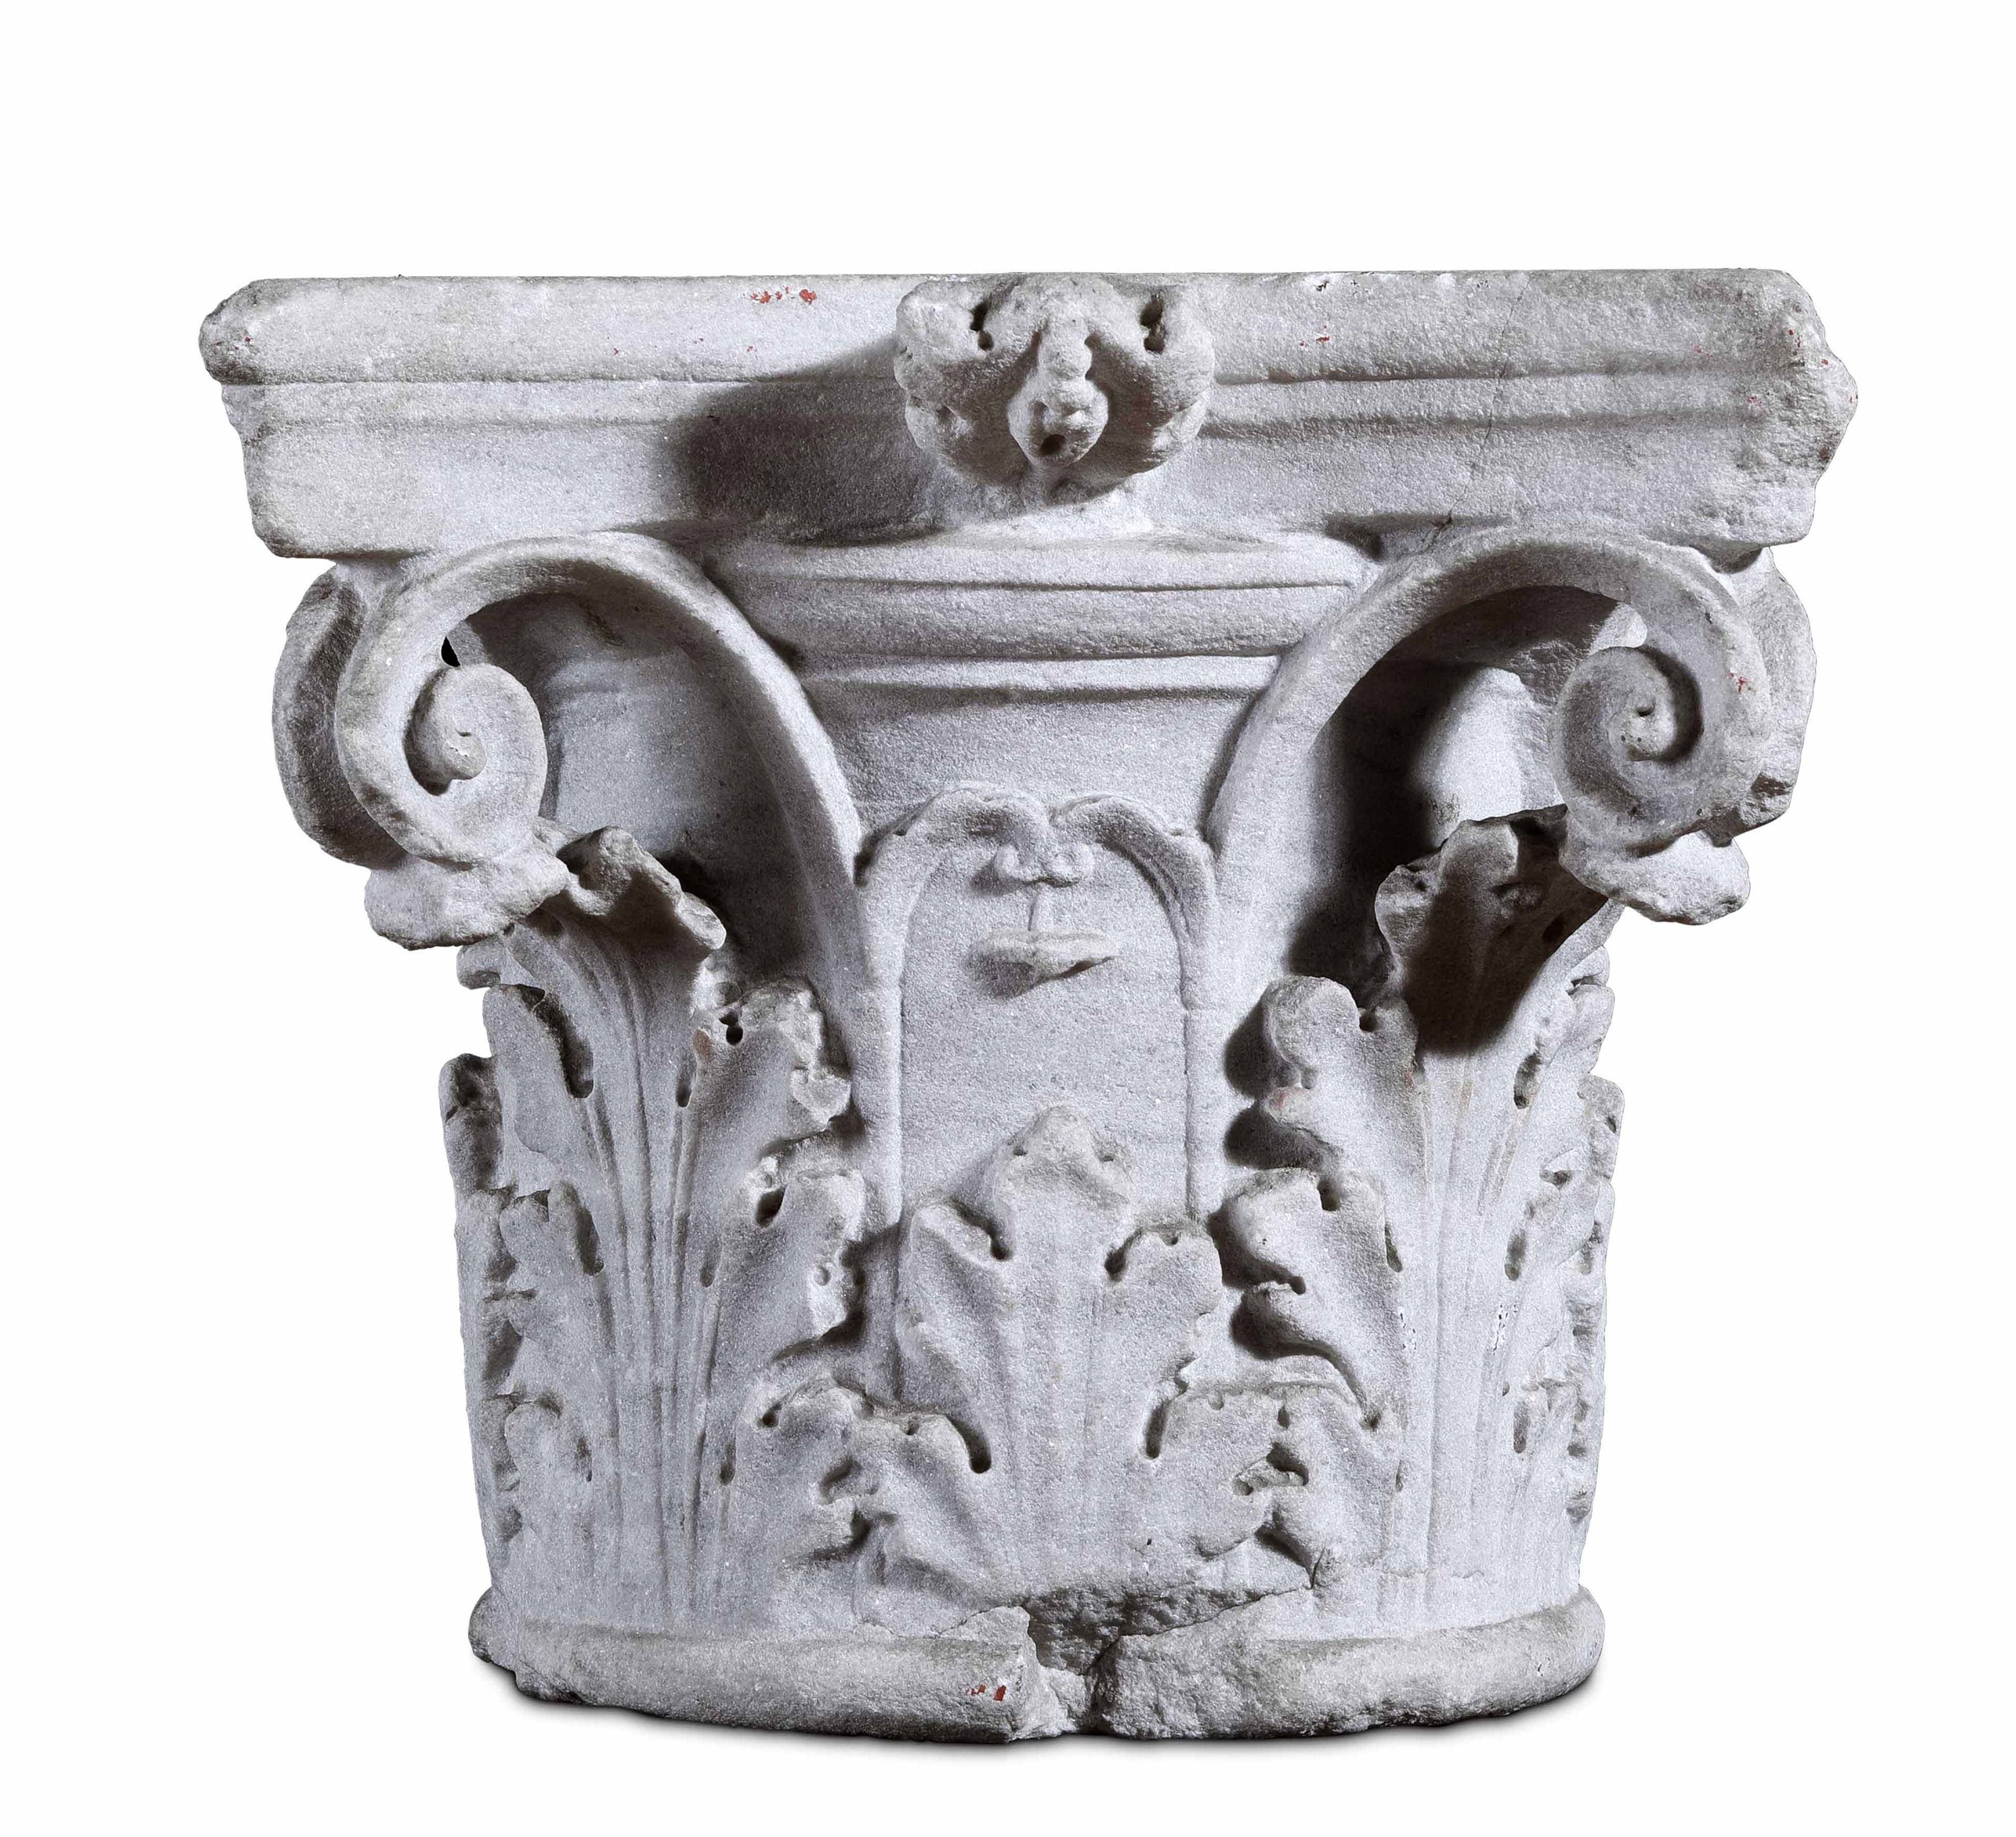 A Corinthian marble capital, Italy, 1400s - cm 38,5x38,5x34. L'elemento [...] - Image 2 of 2